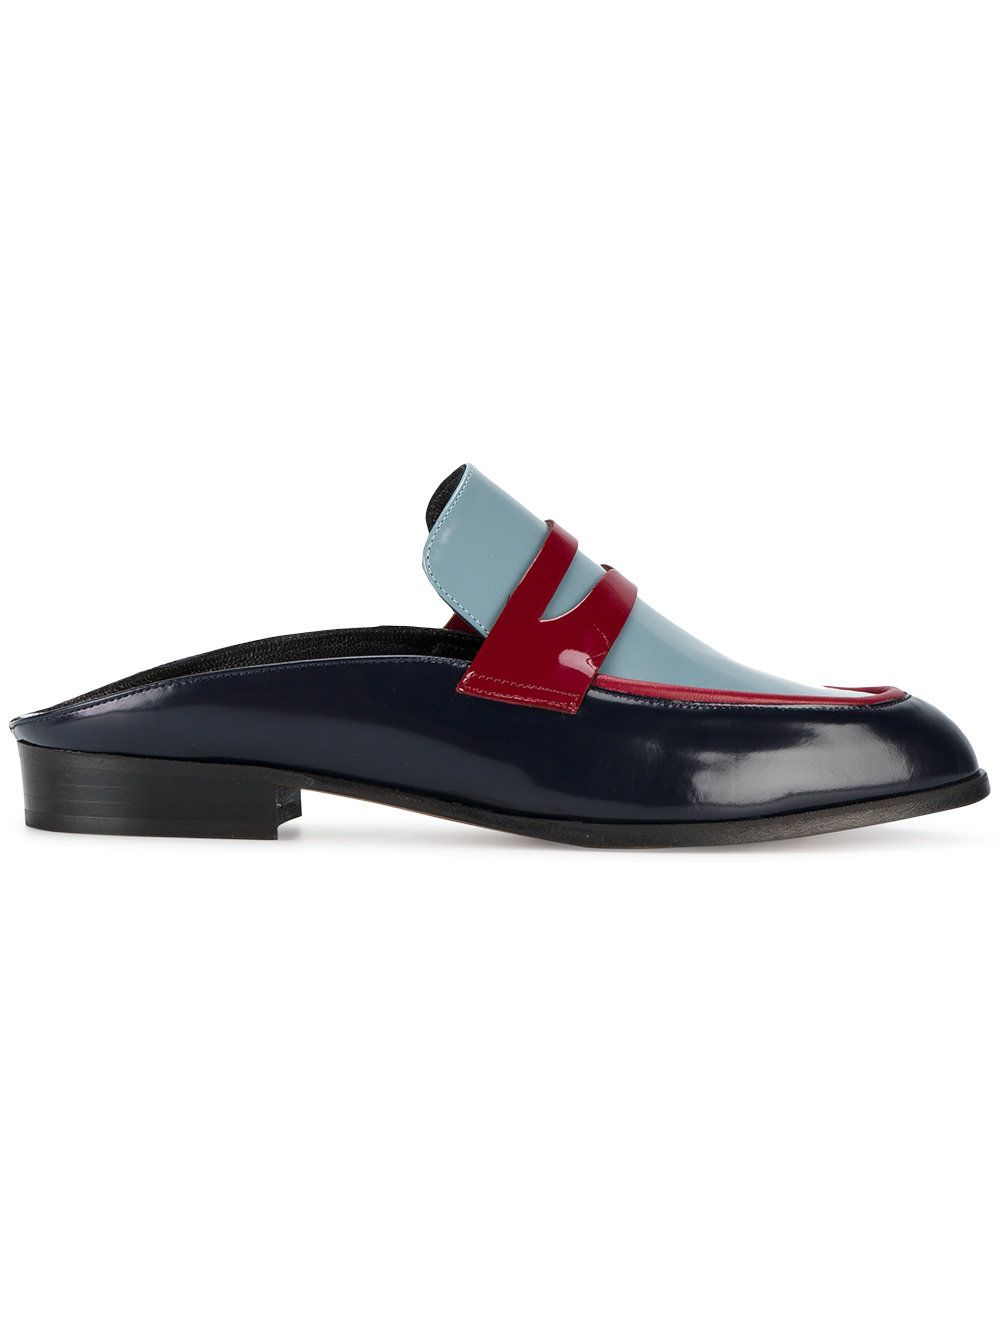 Allan Two-Tone Leather Mules Robert Clergerie KIV3omZgQ